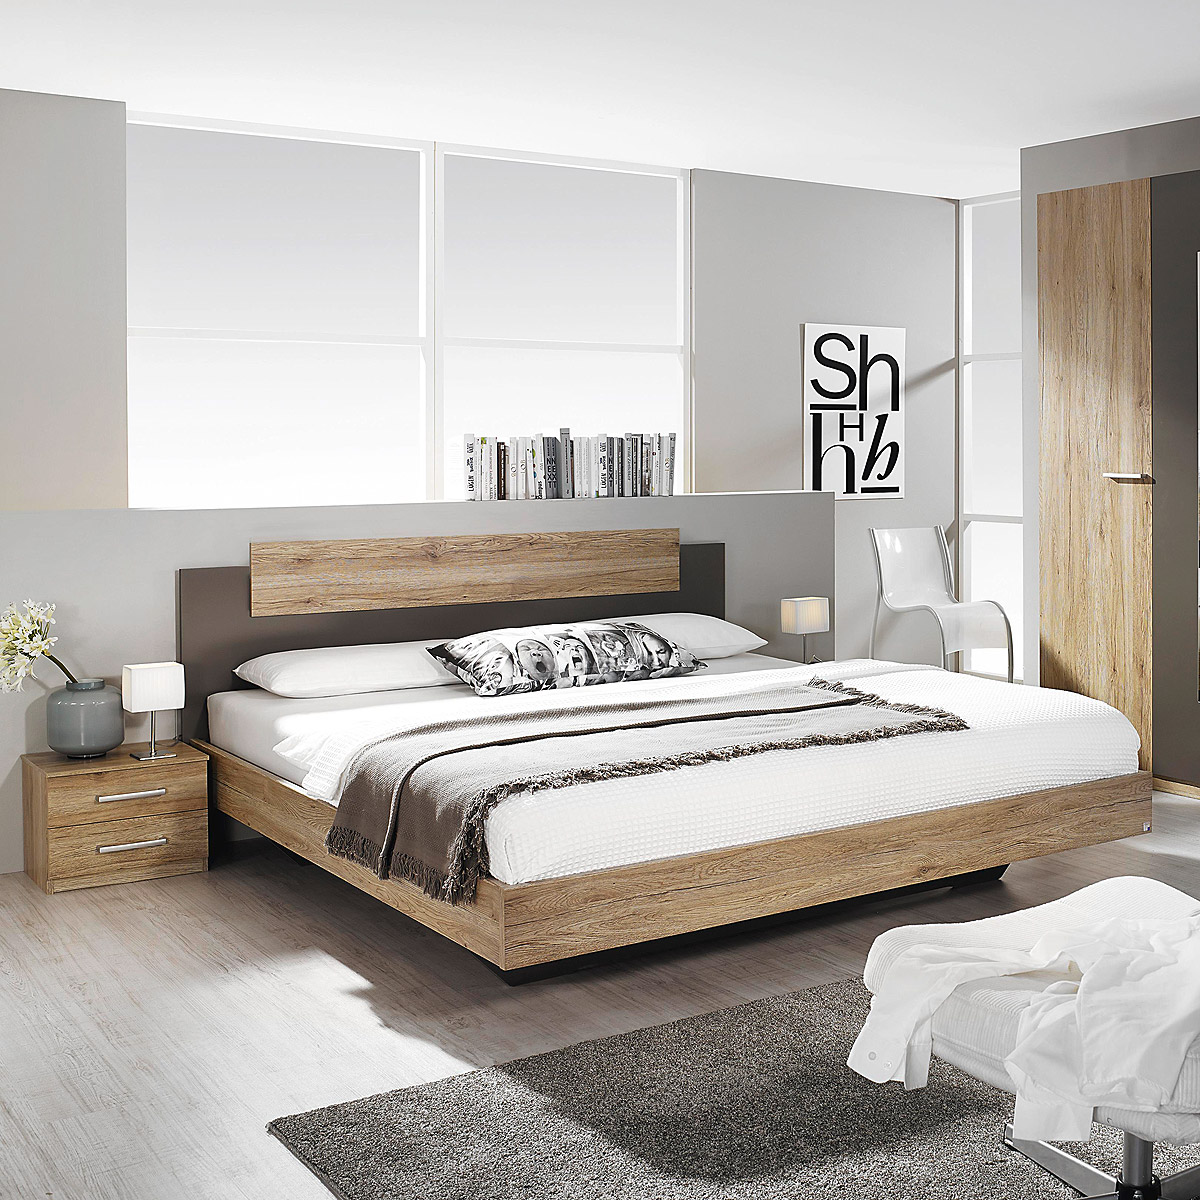 bettanlage borba bett nako eiche sanremo hell lavagrau. Black Bedroom Furniture Sets. Home Design Ideas